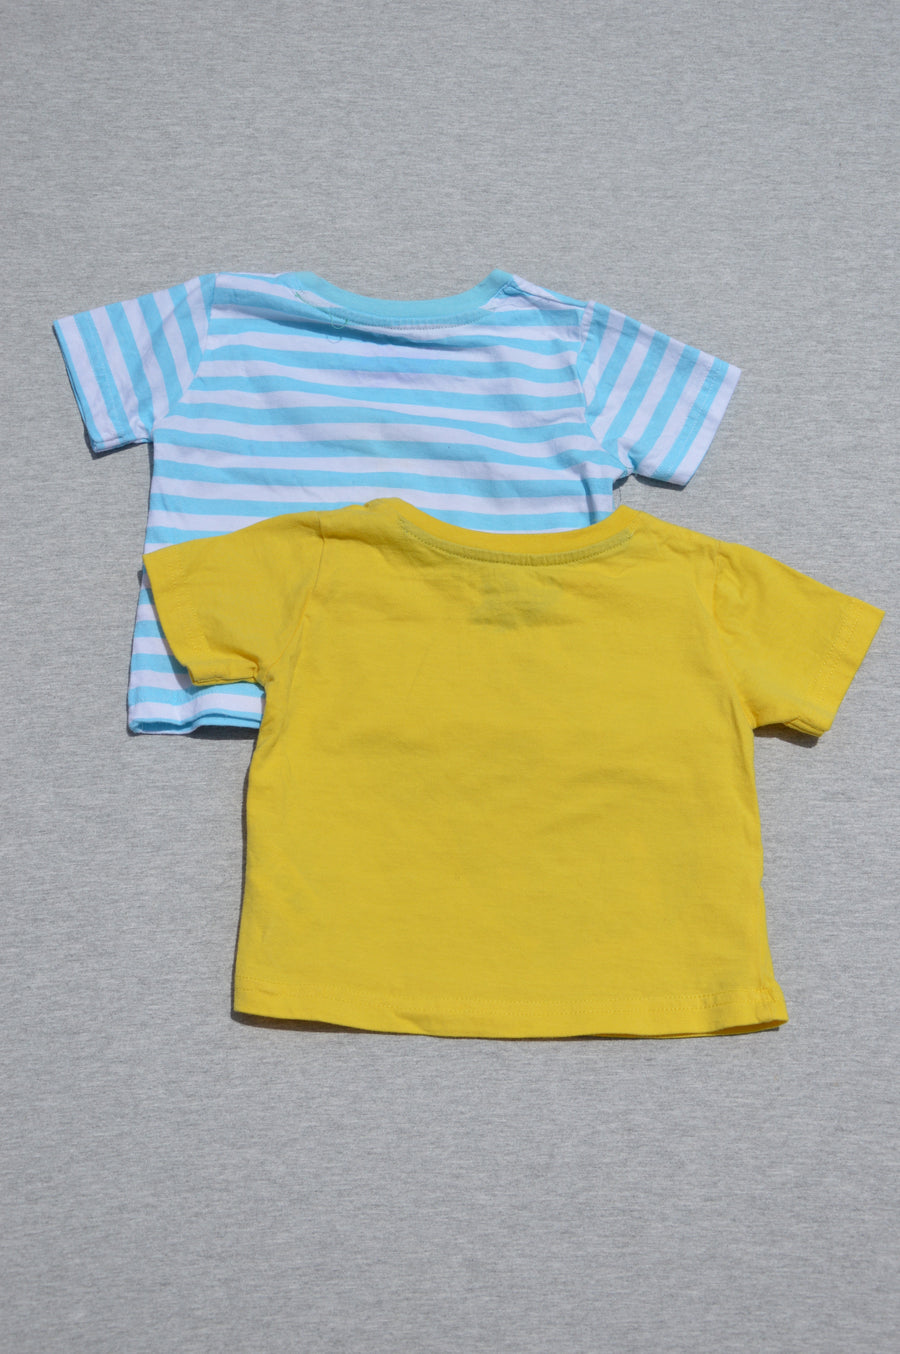 Little Rebel 2 x yellow & turquoise & white striped t-shirt, size 3-6m